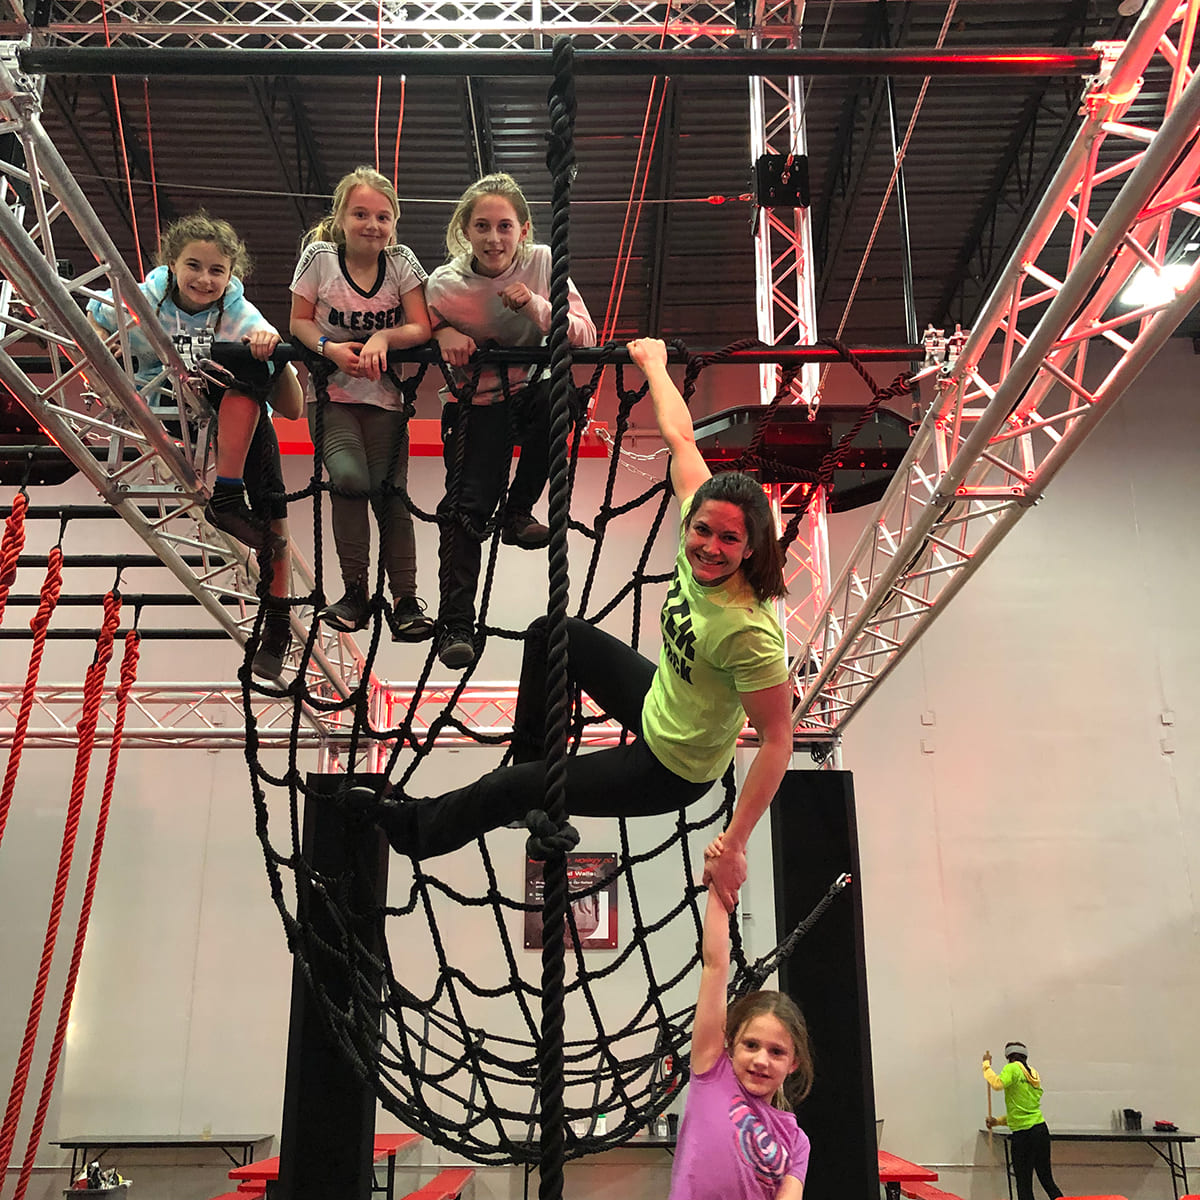 A group of girls on a rope obstacle